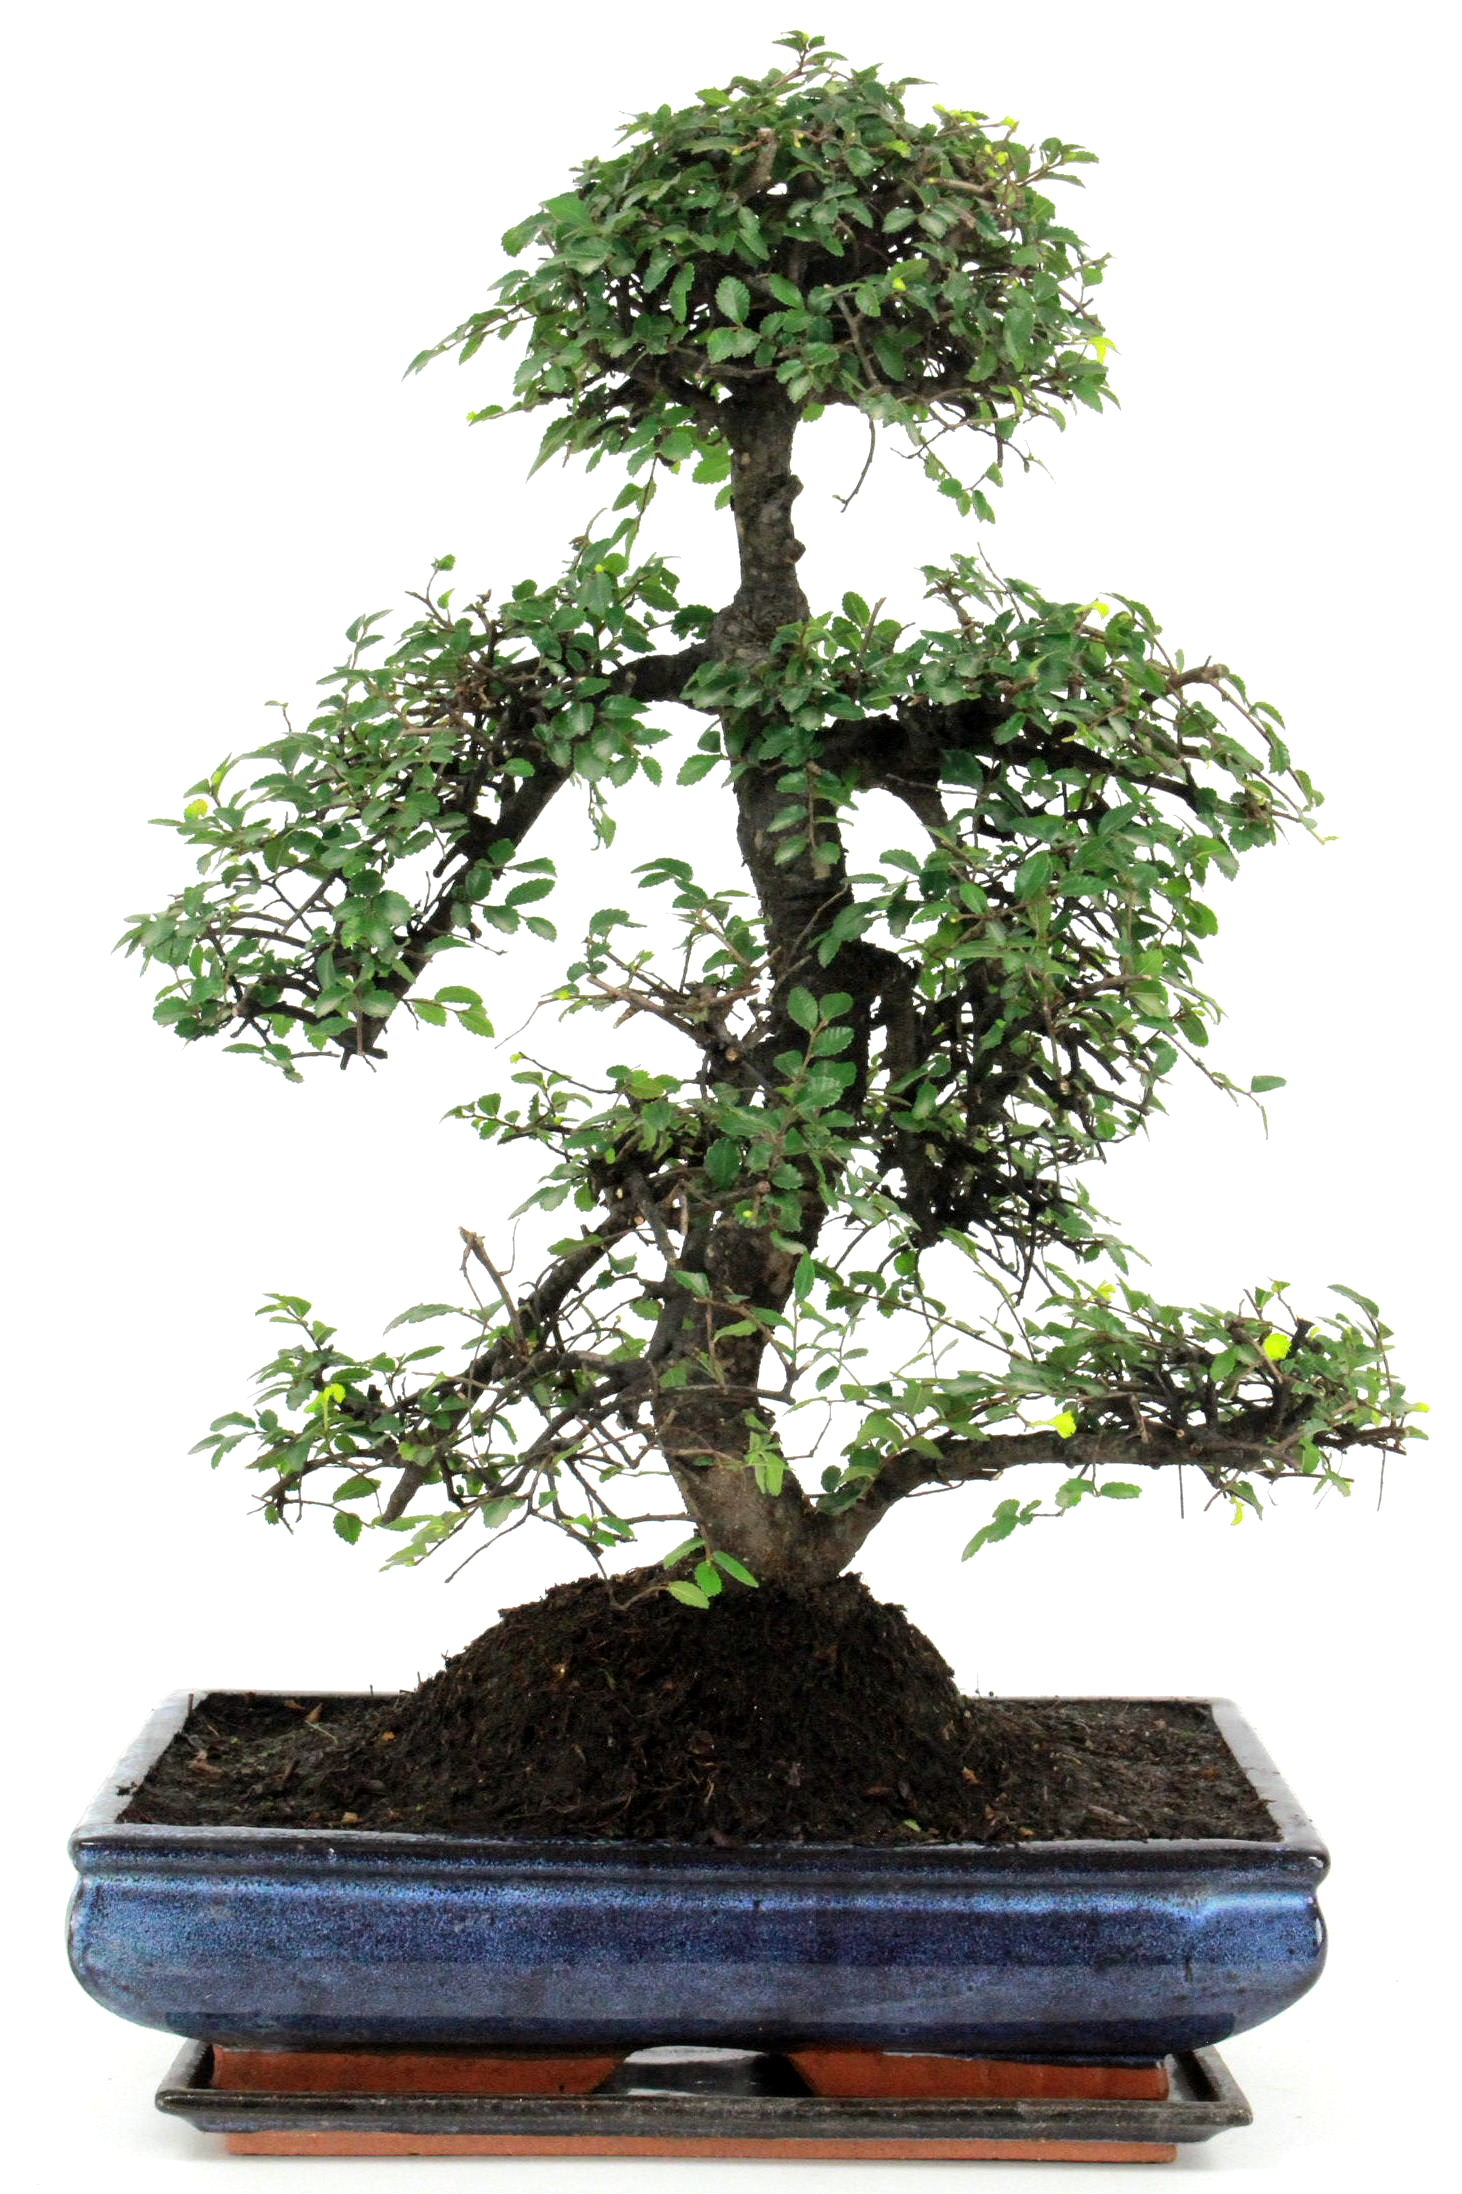 bonsai chinesische ulme 55 cm 346 bei oyaki bonsai kaufen. Black Bedroom Furniture Sets. Home Design Ideas